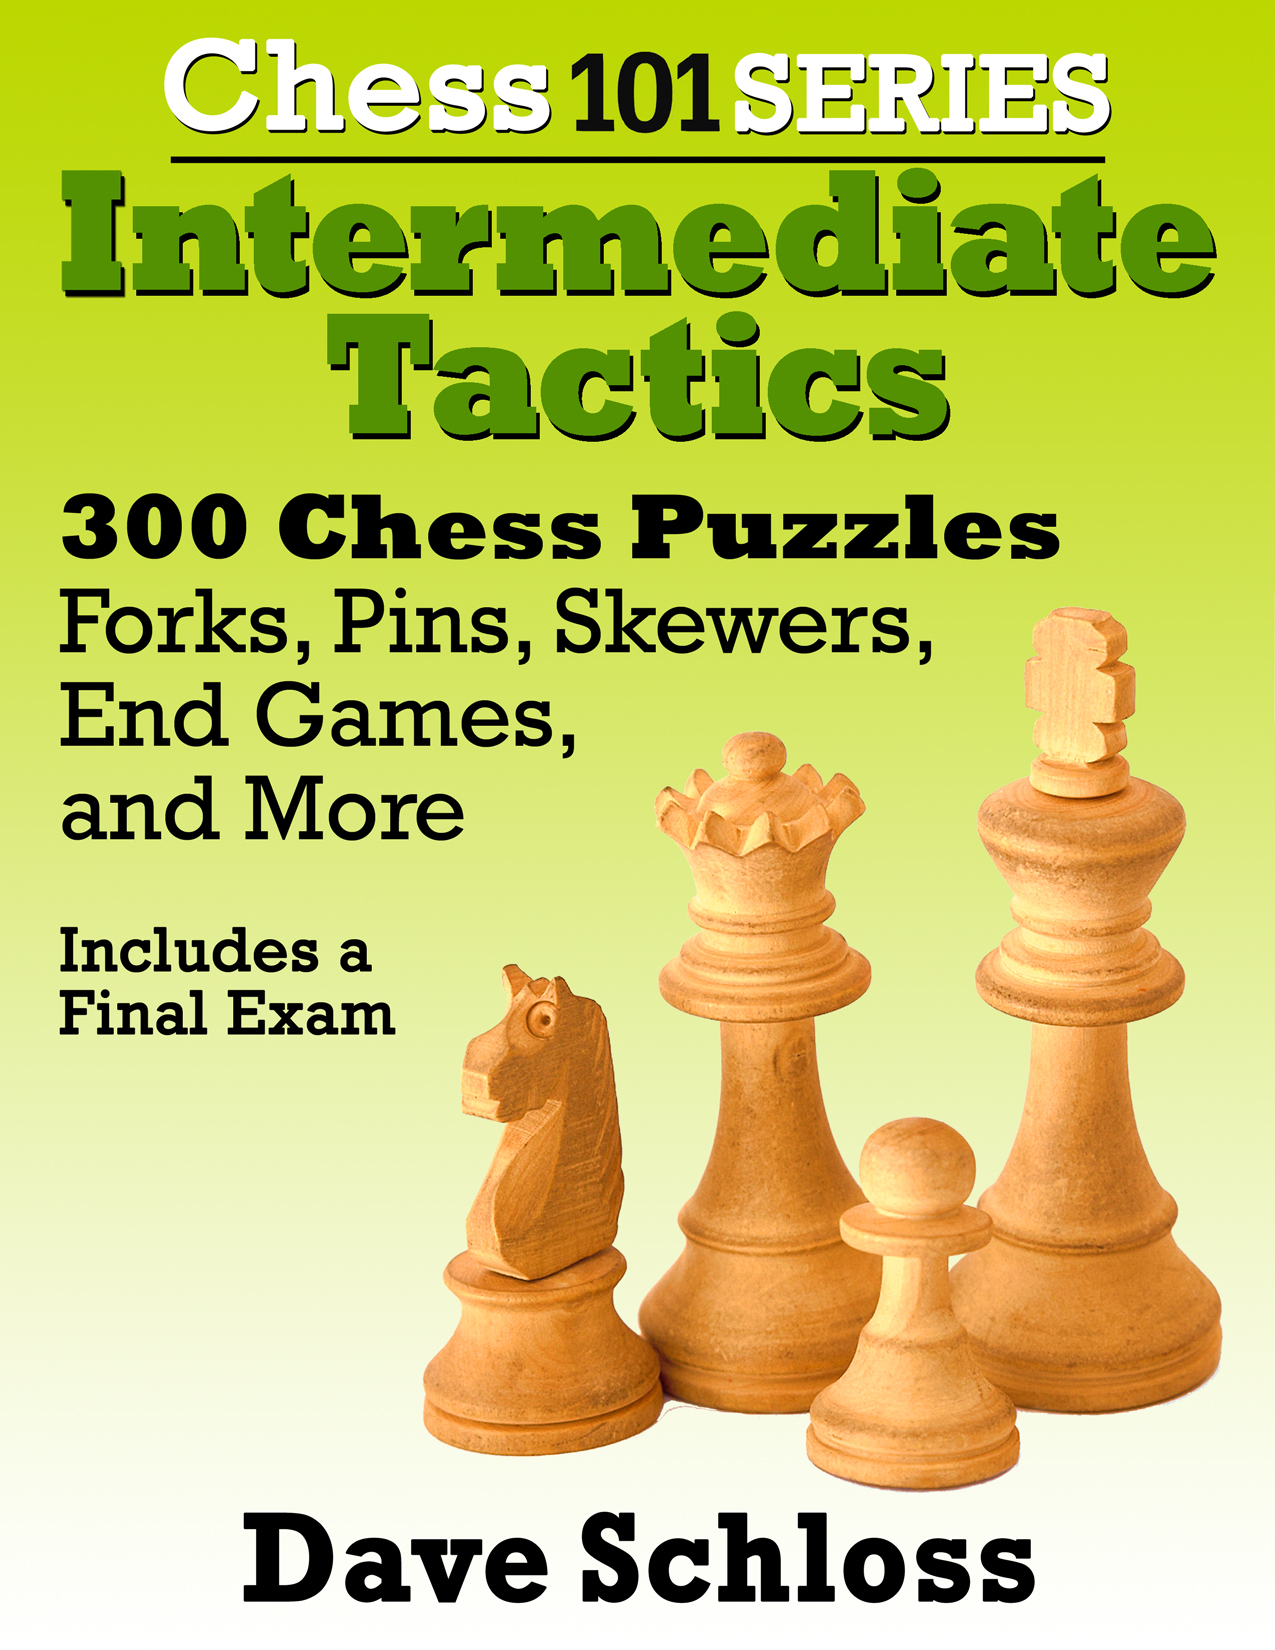 <i>300 chess tactics puzzles covering pins, forks, skewers, end games and more!</i>